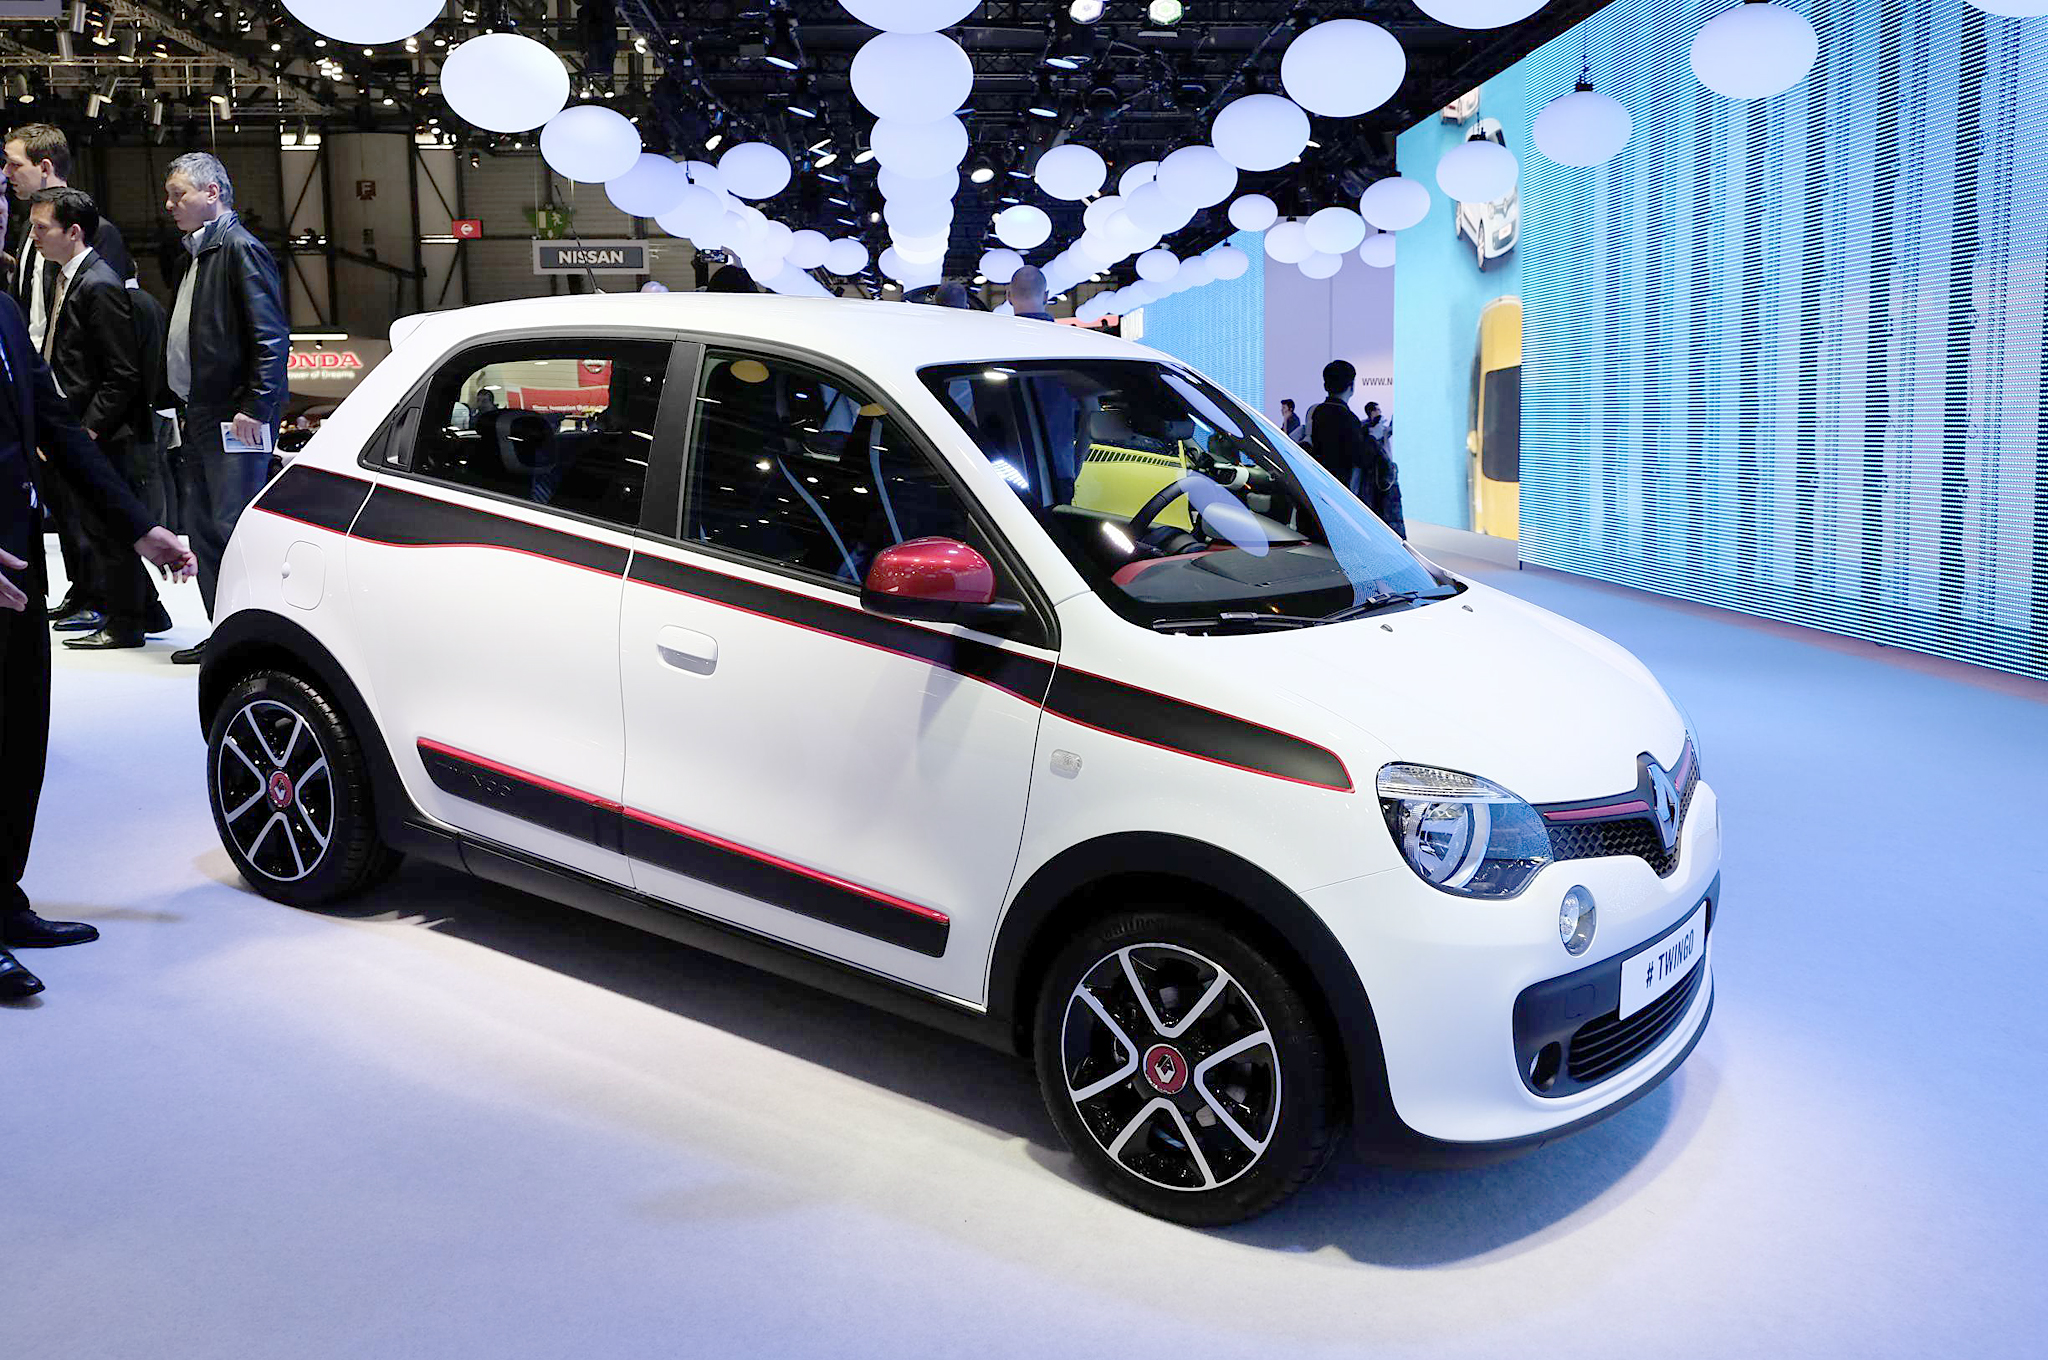 2015 renault twingo exterior profile 1466 cars performance reviews and test drive. Black Bedroom Furniture Sets. Home Design Ideas